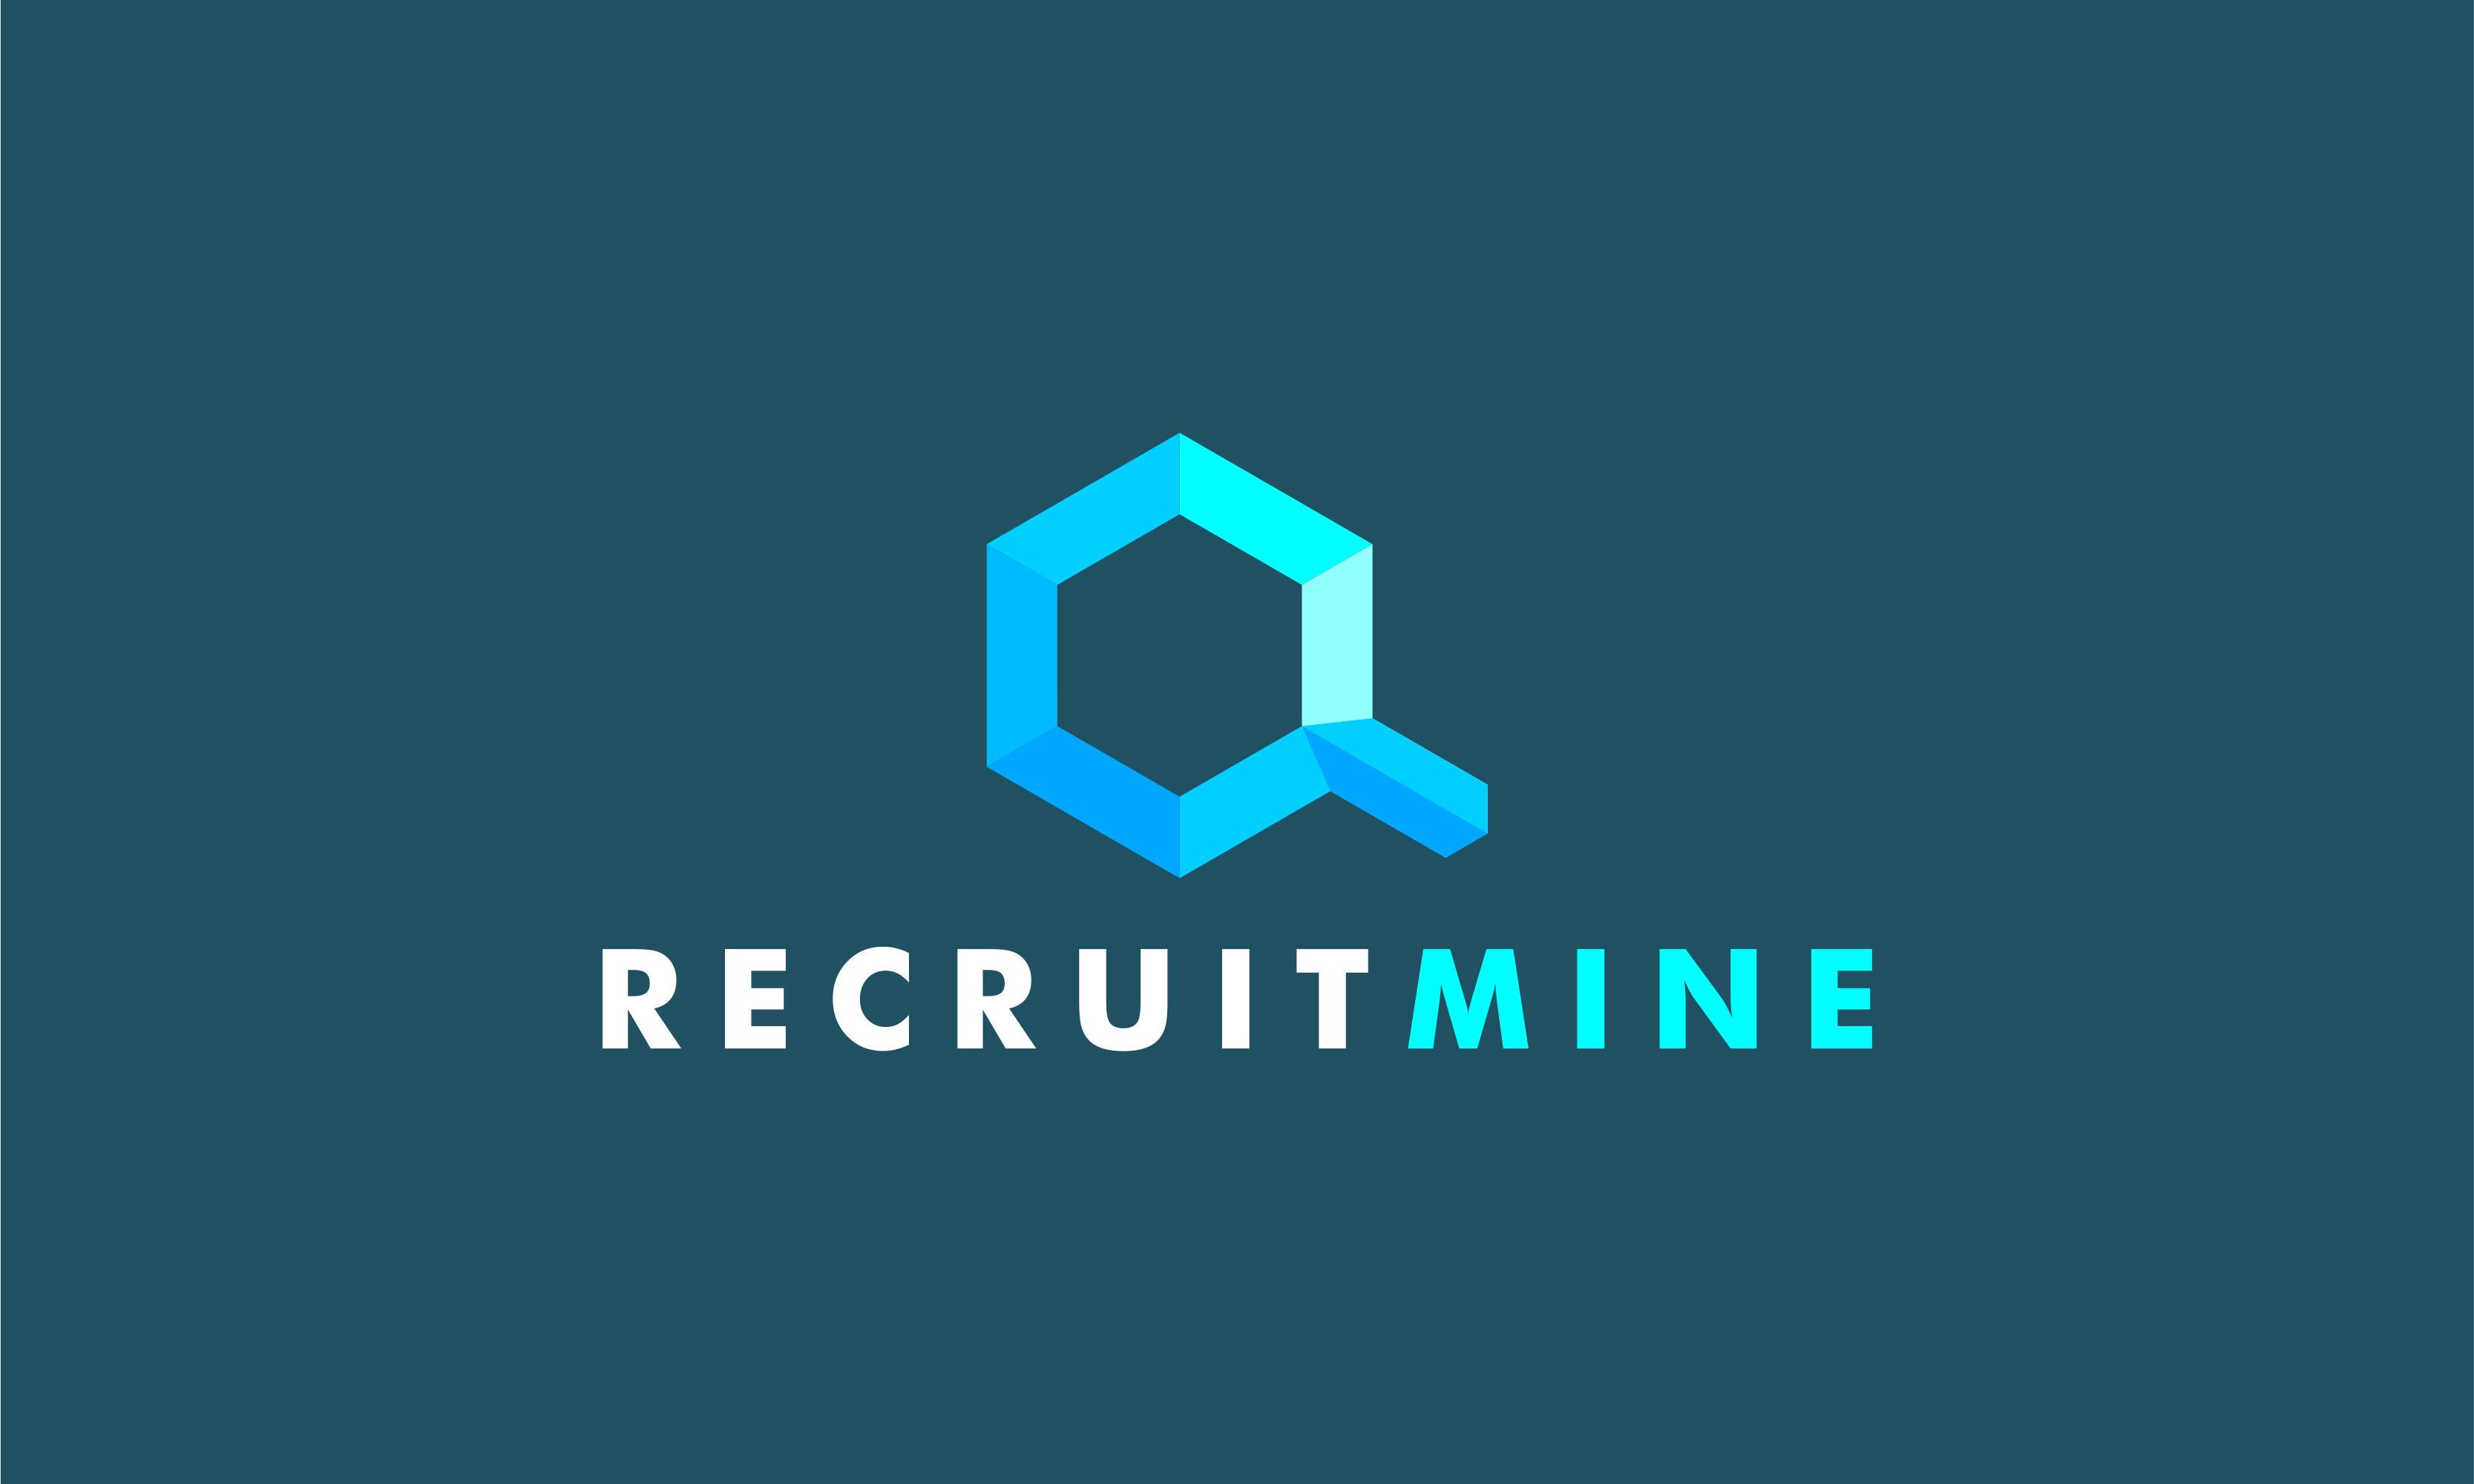 Recruitmine